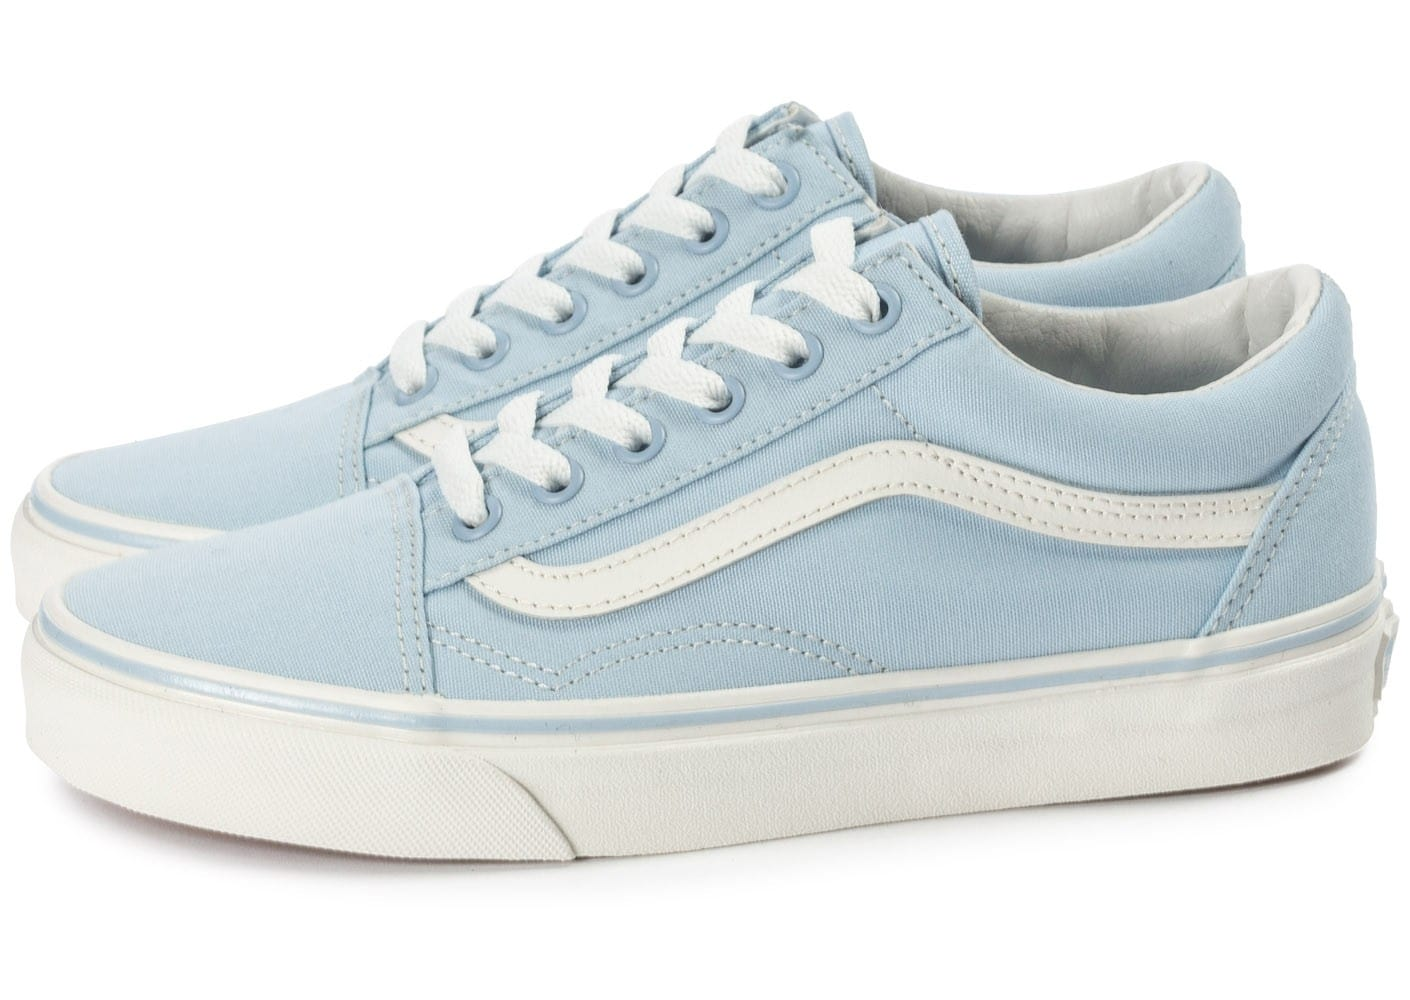 vans old skool skyway bleue chaussures chaussures chausport. Black Bedroom Furniture Sets. Home Design Ideas